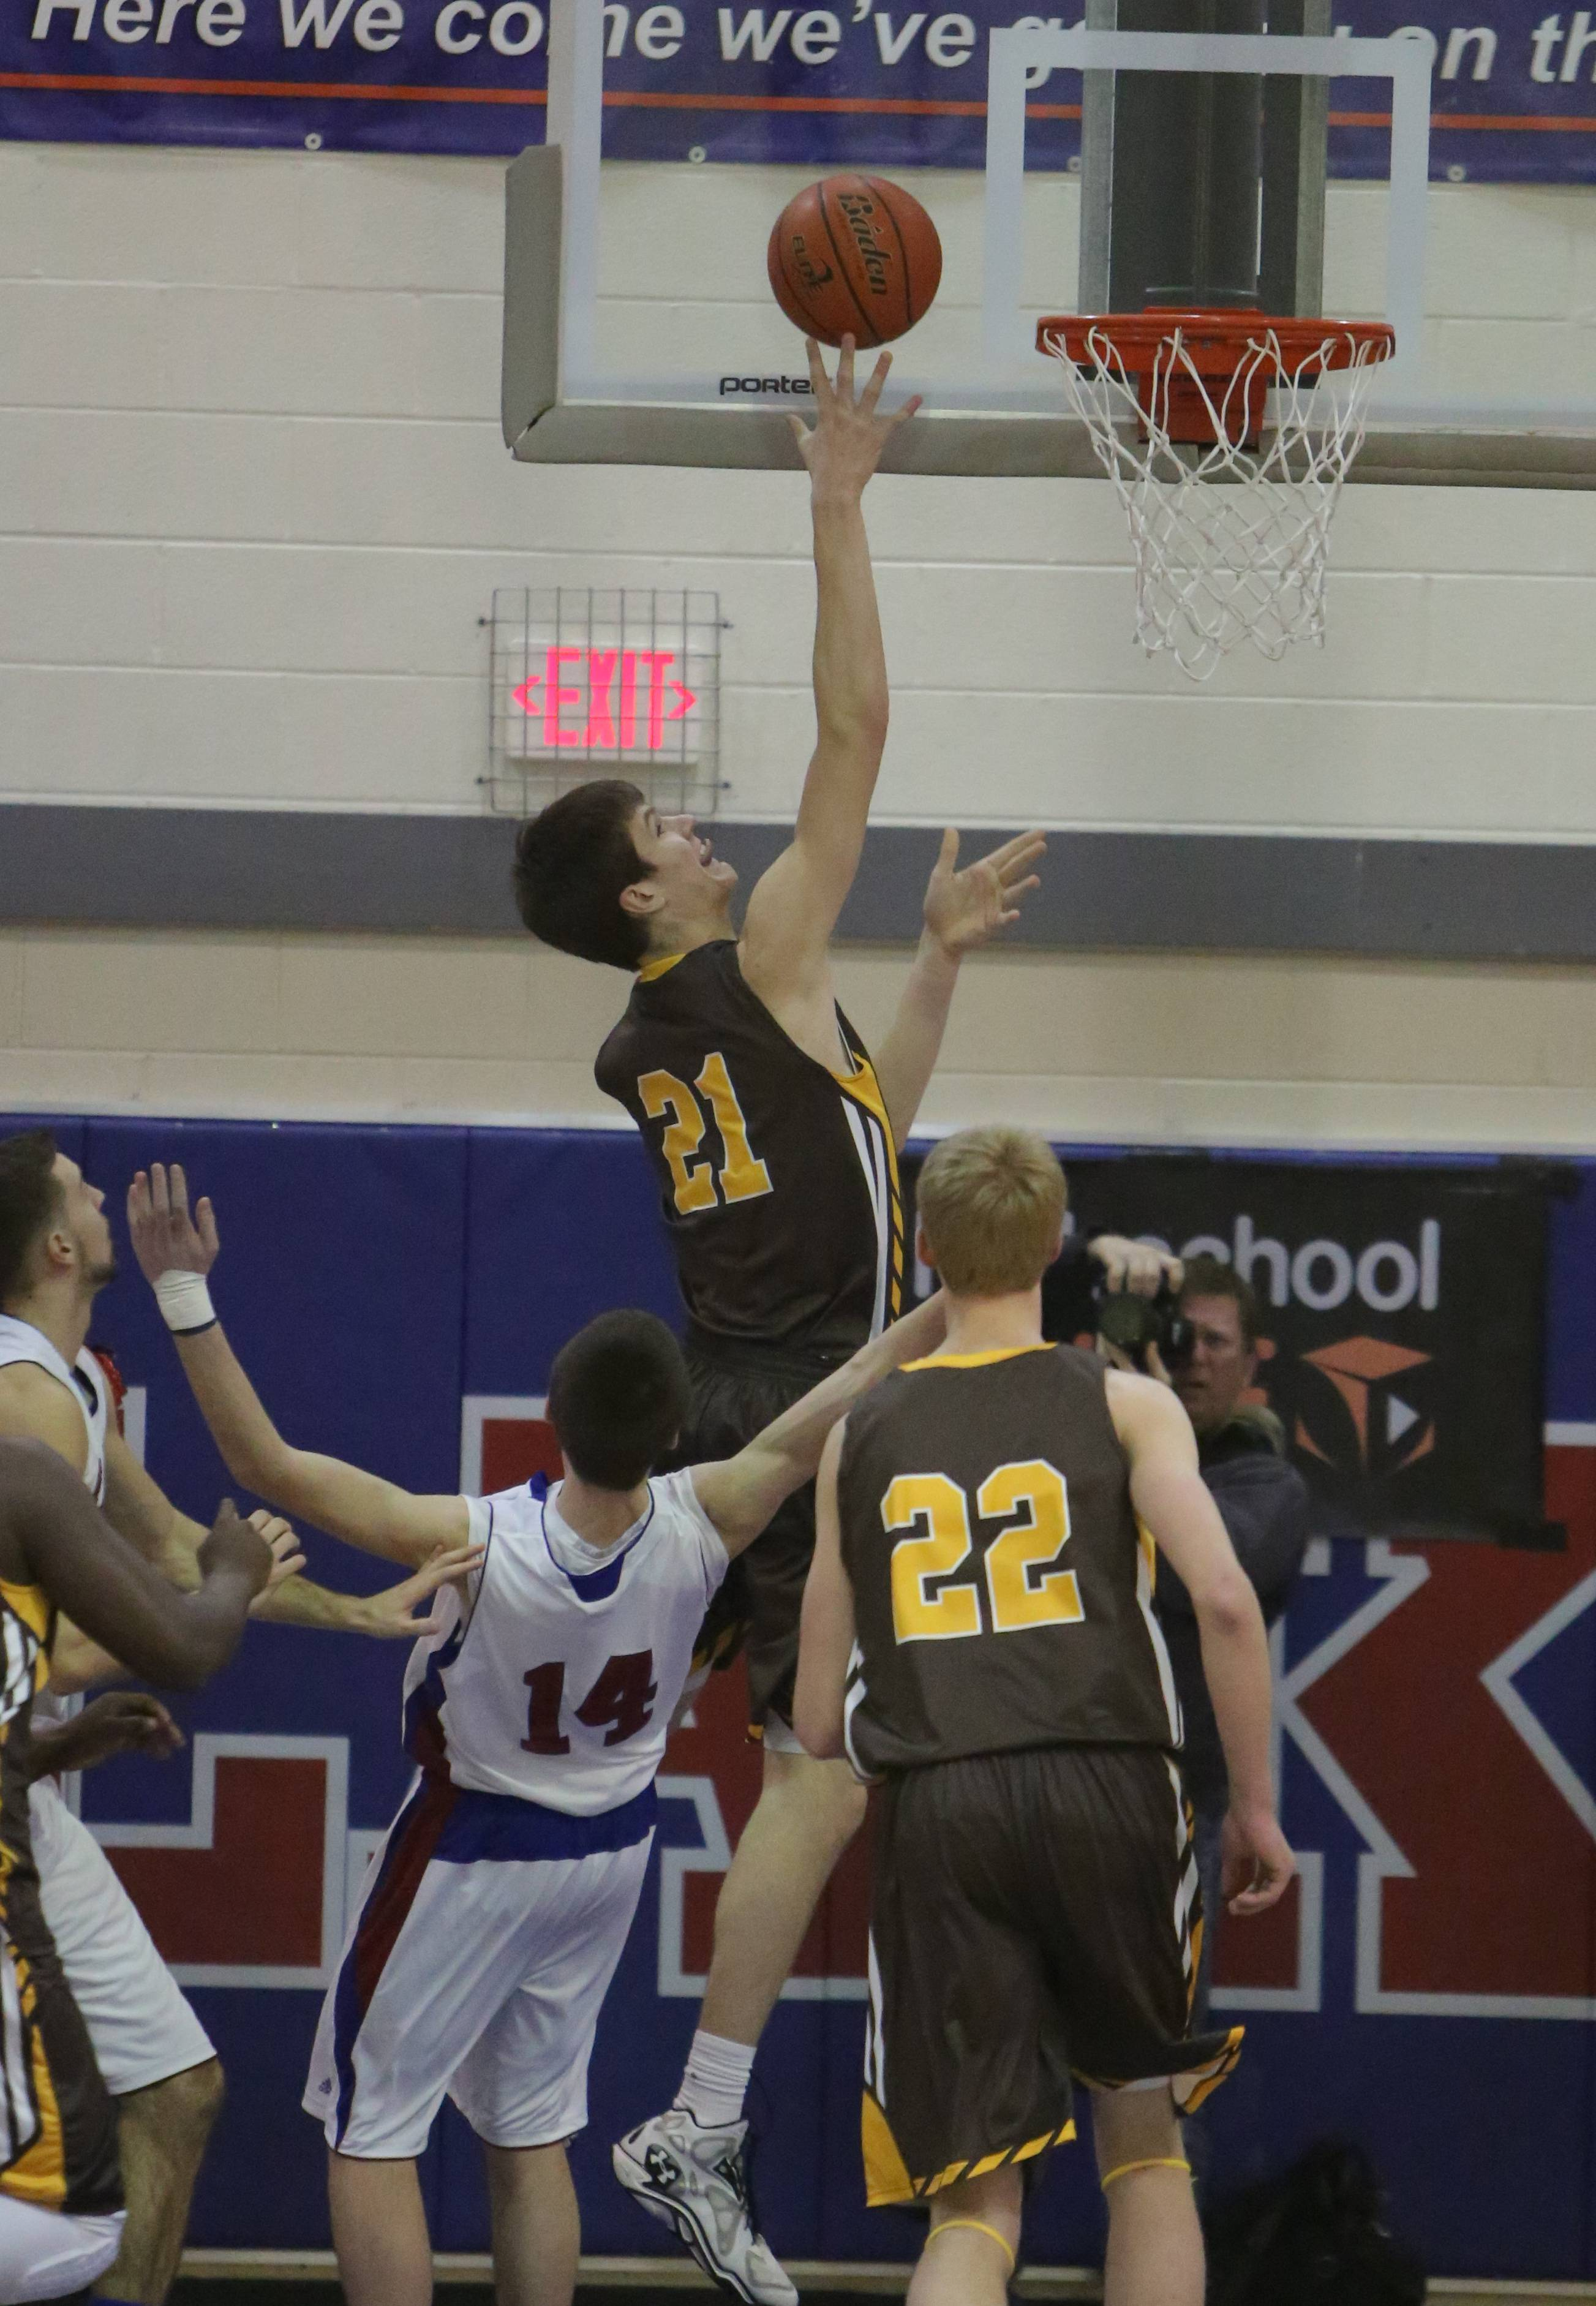 Images from the Carmel at Lakes boys basketball game on Monday, February 10 in Lake Villa.